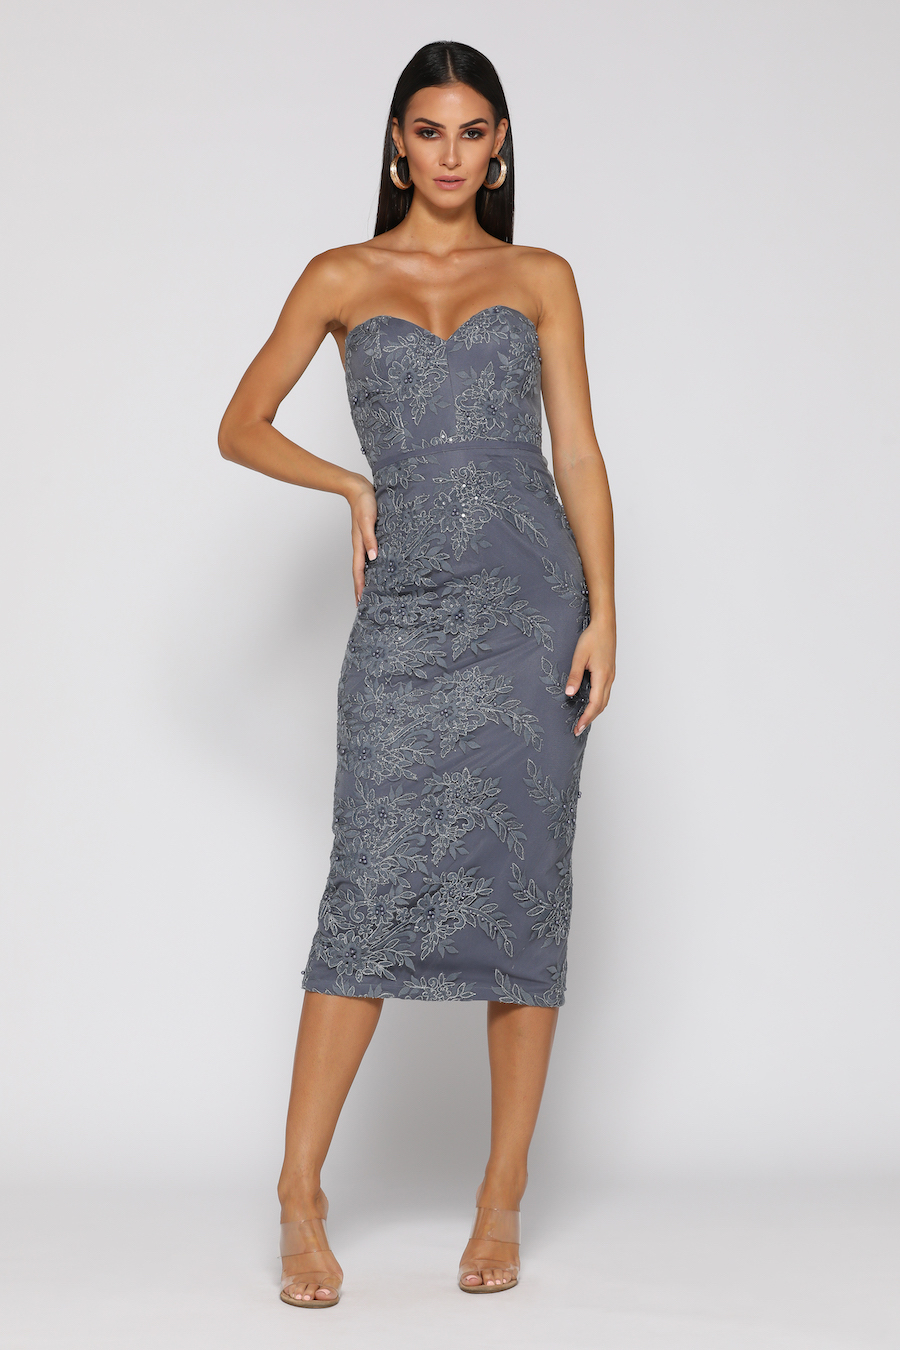 Strapless fitted pewter dress